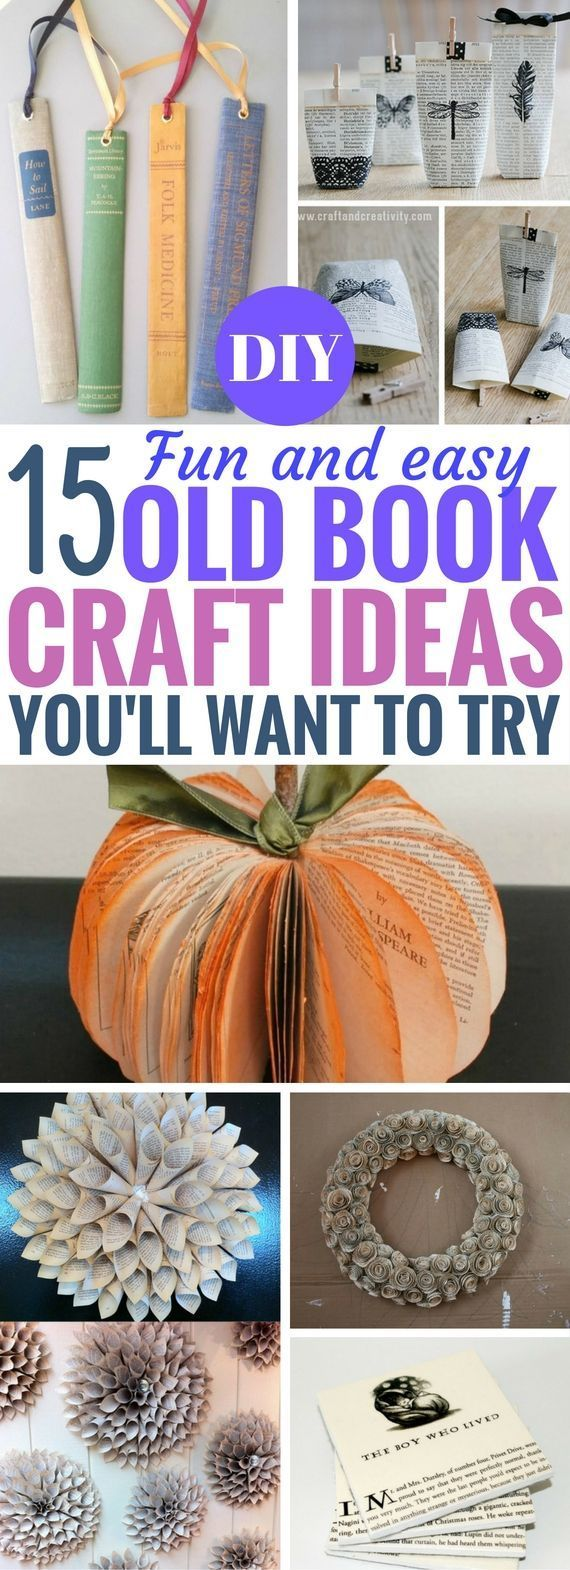 17 diy projects Useful creative ideas